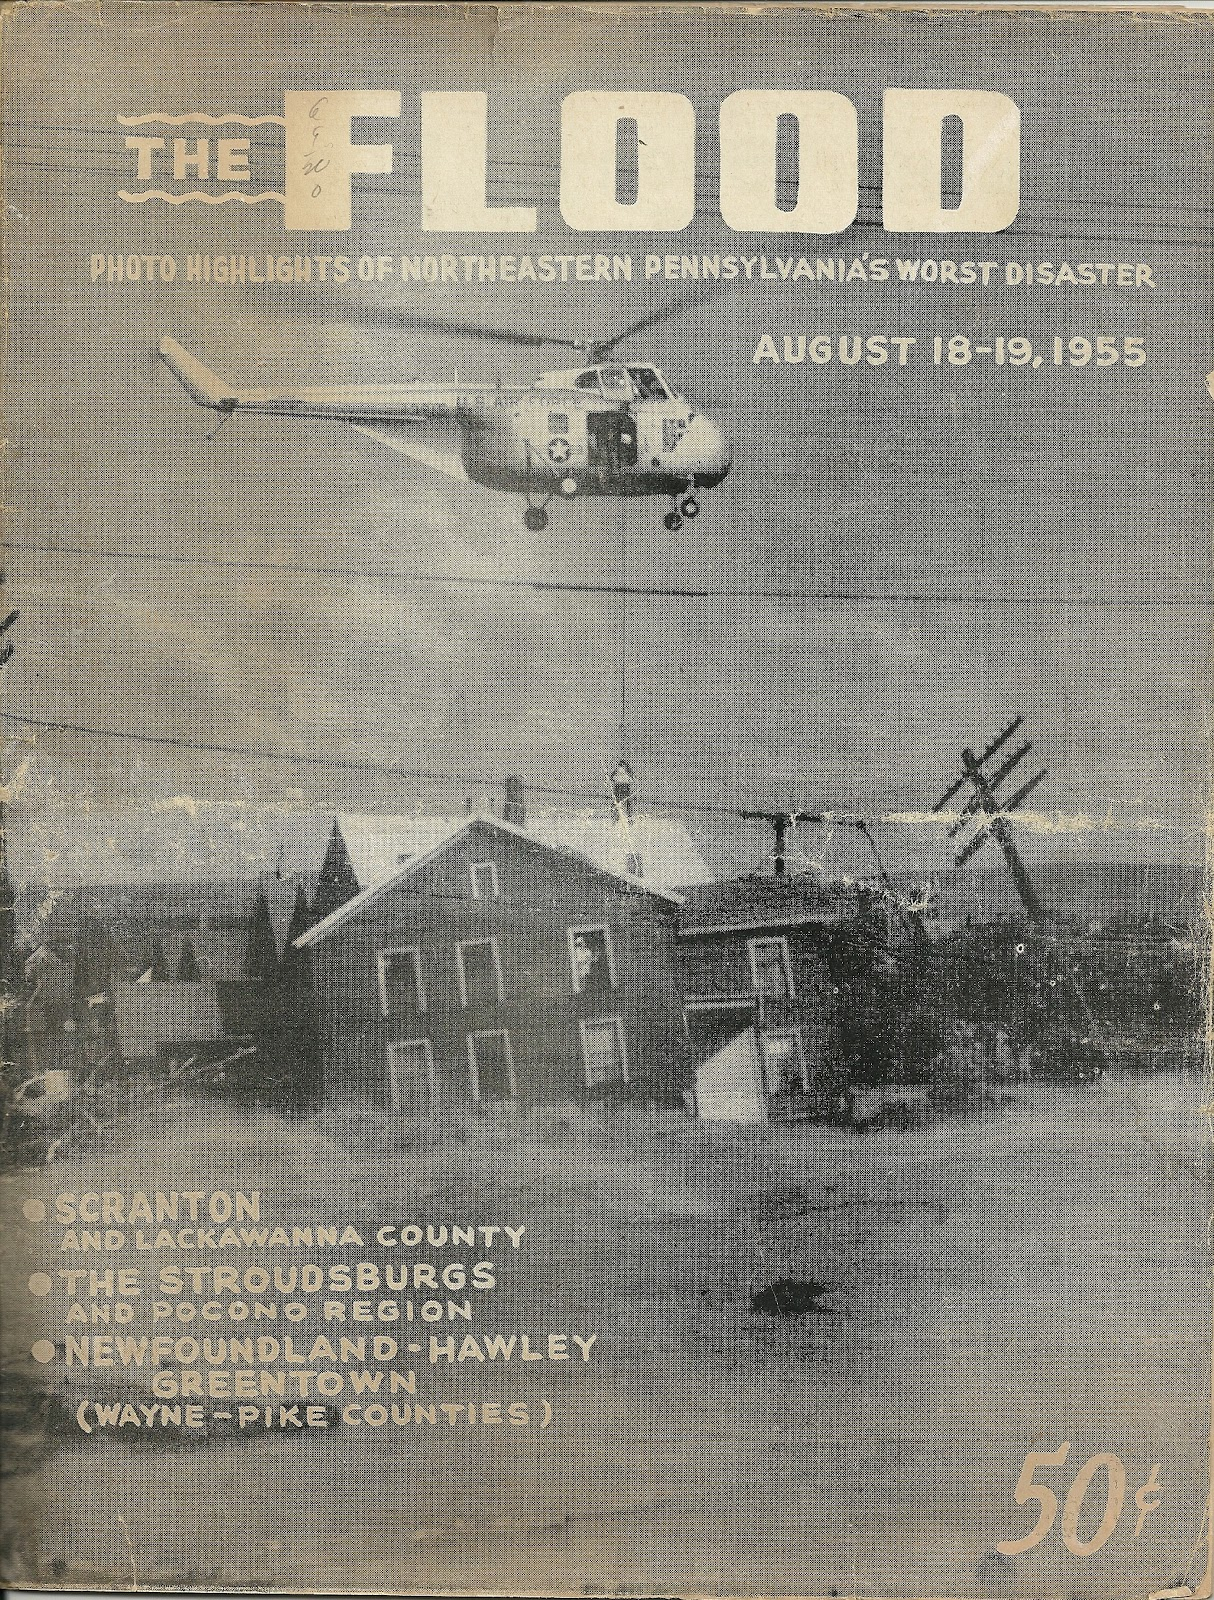 Cover+for+Flood+of+1955.JPG